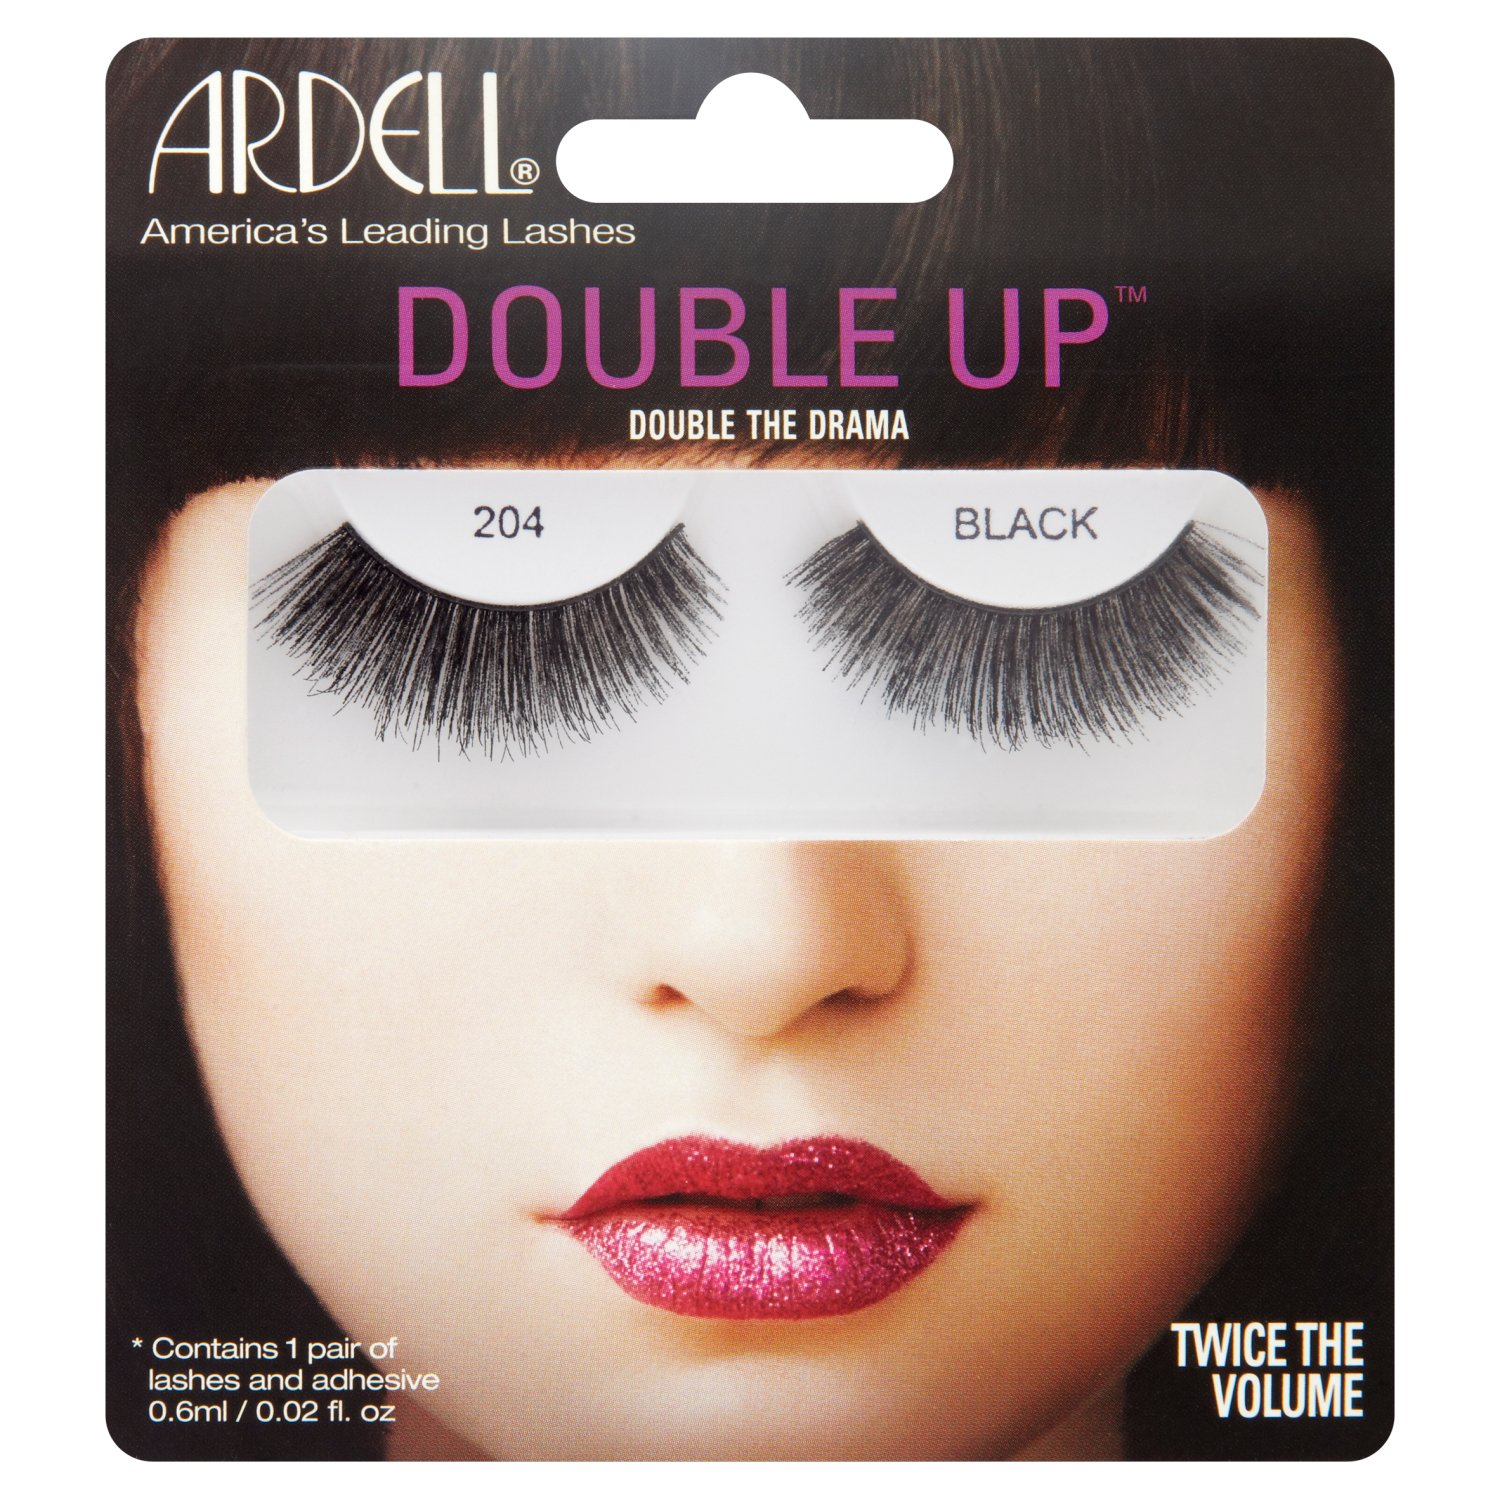 f015fa42bff ARDELL Double Up Lashes - Black 206: Amazon.co.uk: Beauty